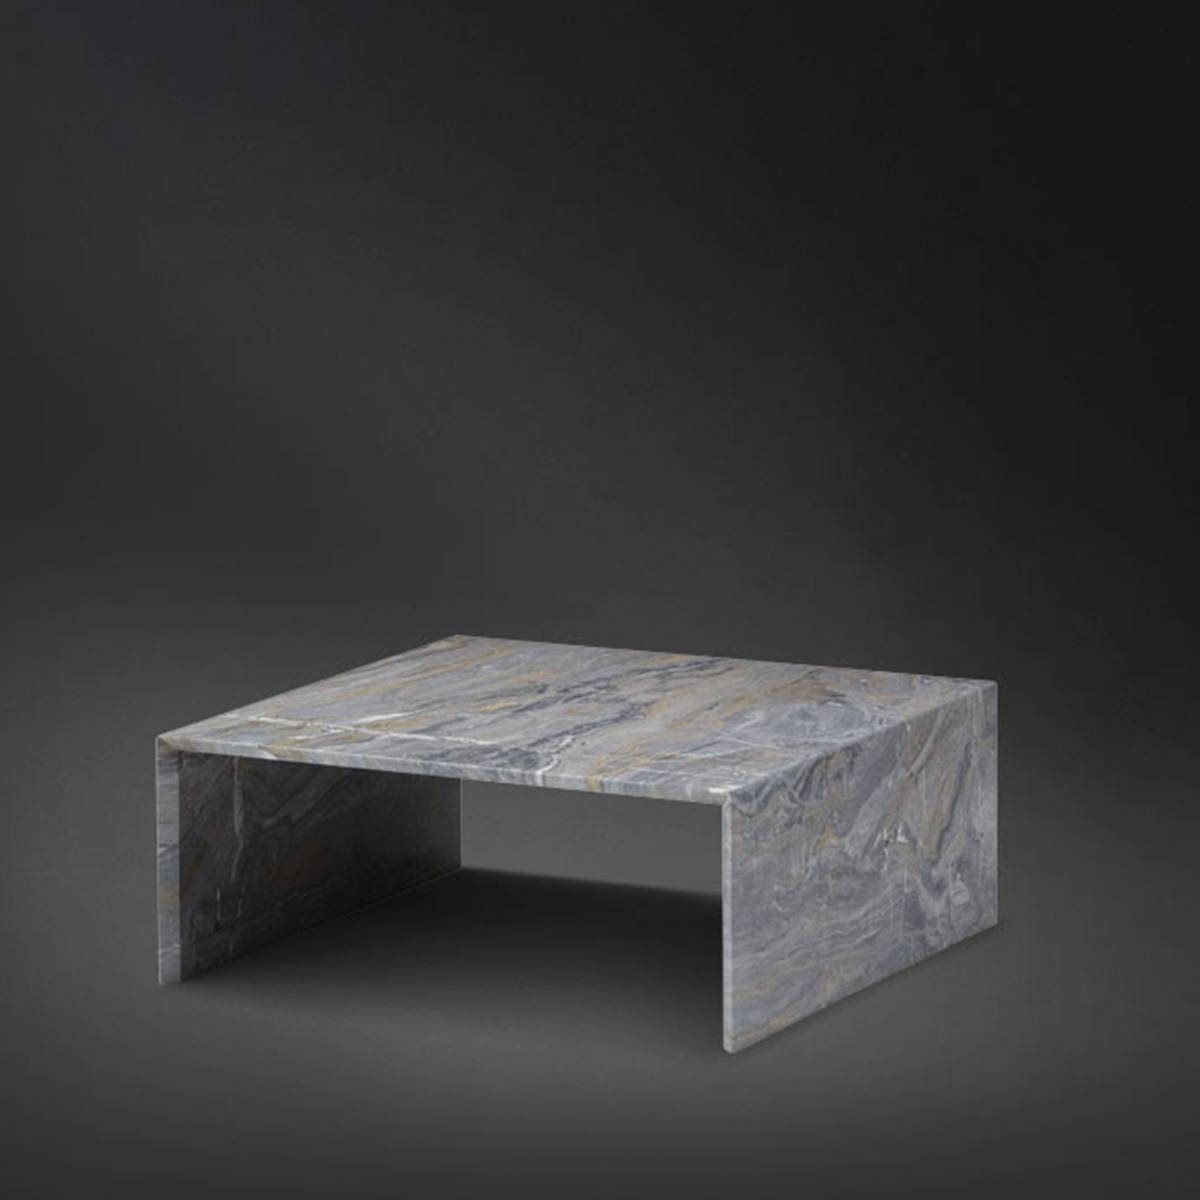 Terrae Low Level Coffee Table – Xtra Designs Pte Ltd With Low Level Coffee Tables (View 5 of 15)